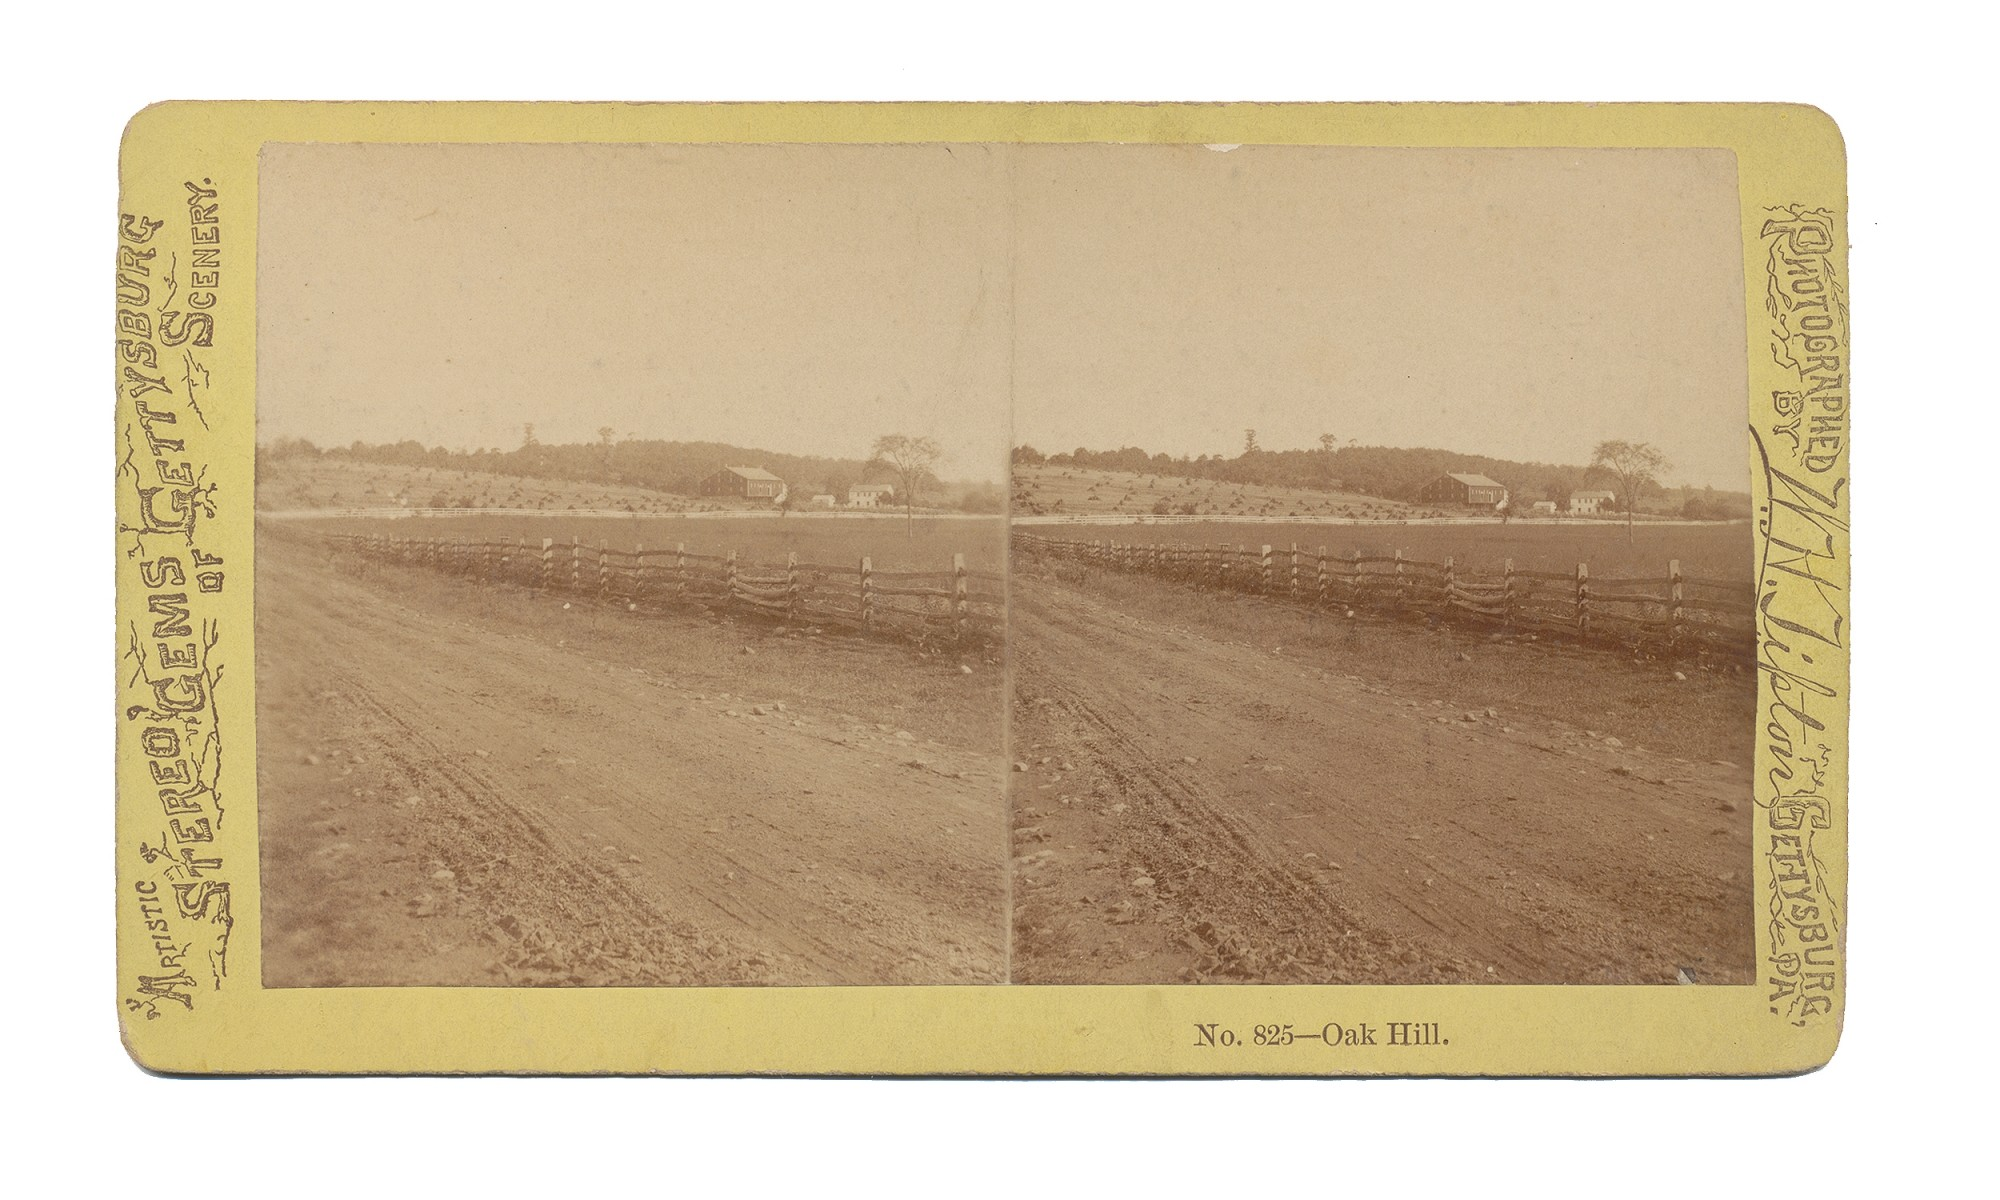 TIPTON STEREO VIEW OF OAK HILL, GETTYSBURG